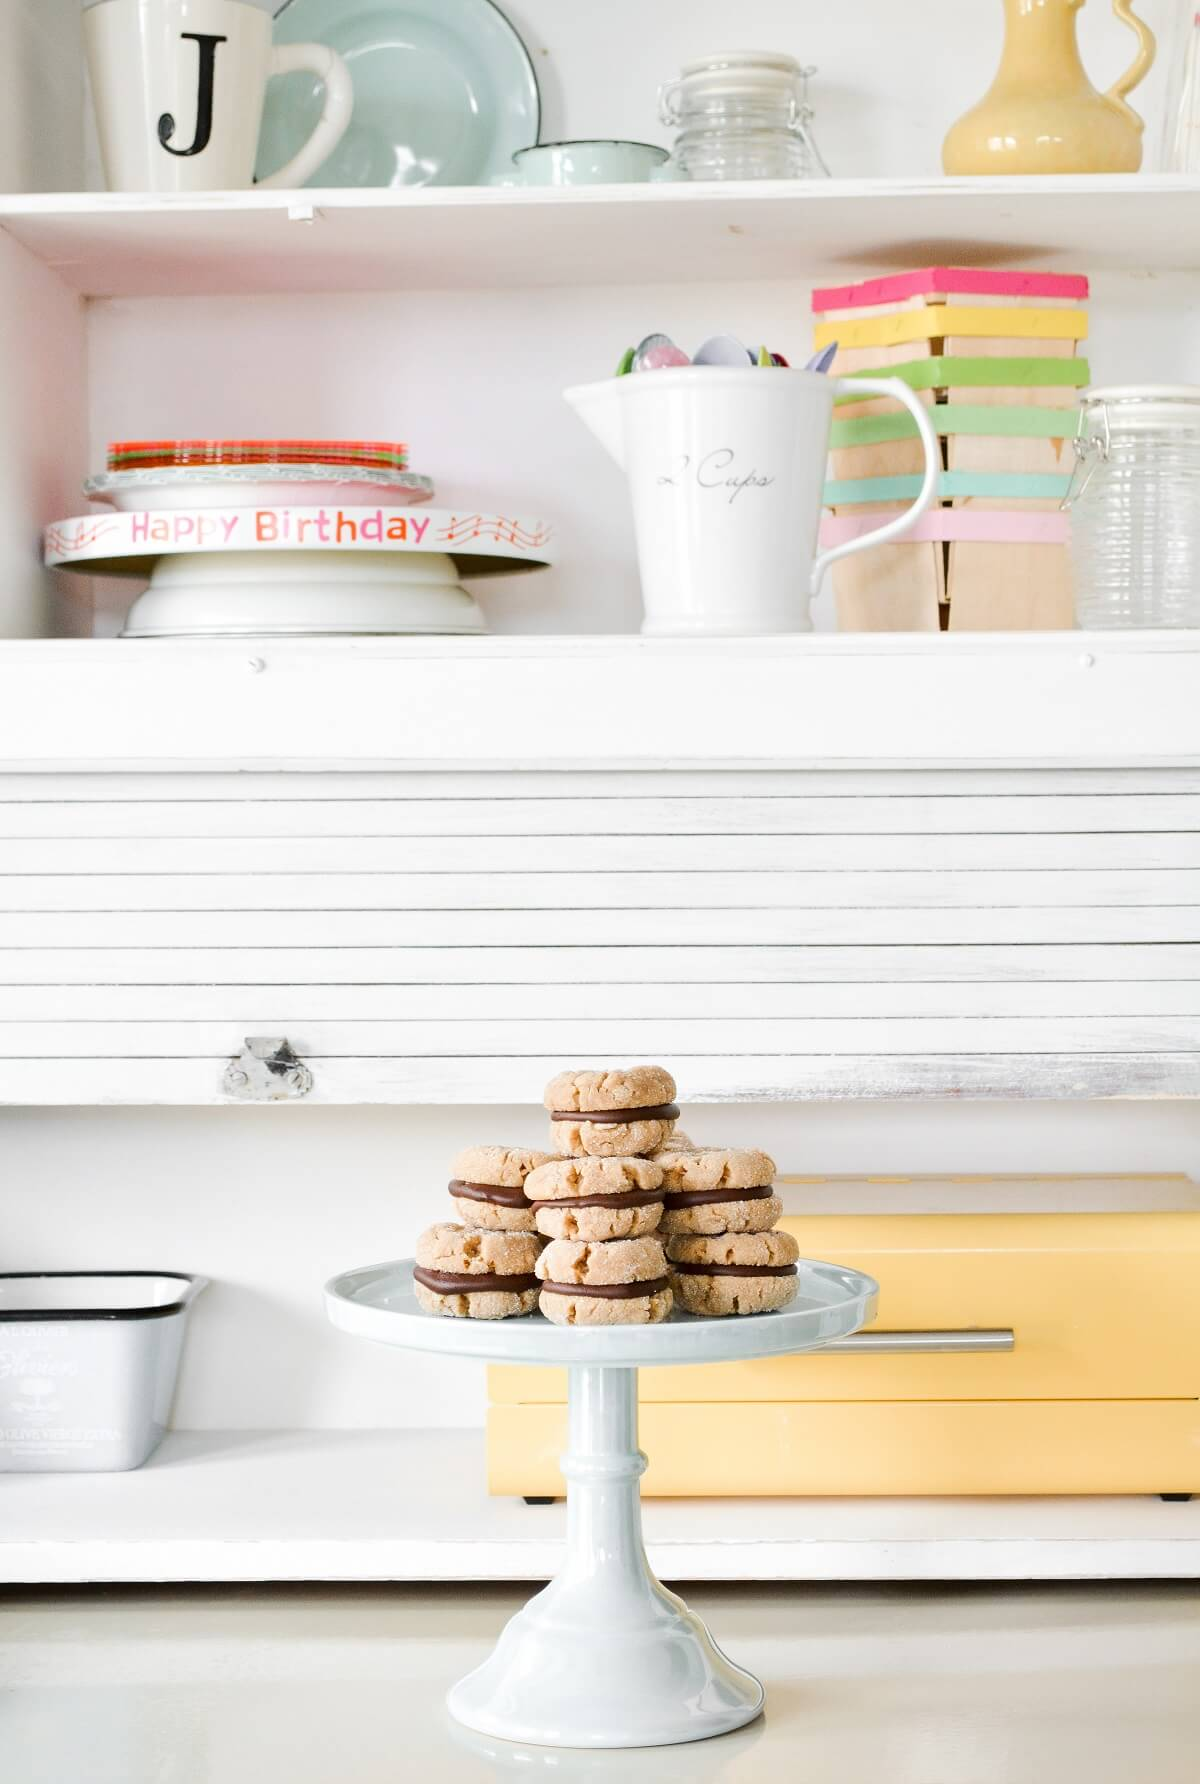 Peanut butter cookie sandwiches, filled with chocolate ganache, stacked on a light blue cake stand.